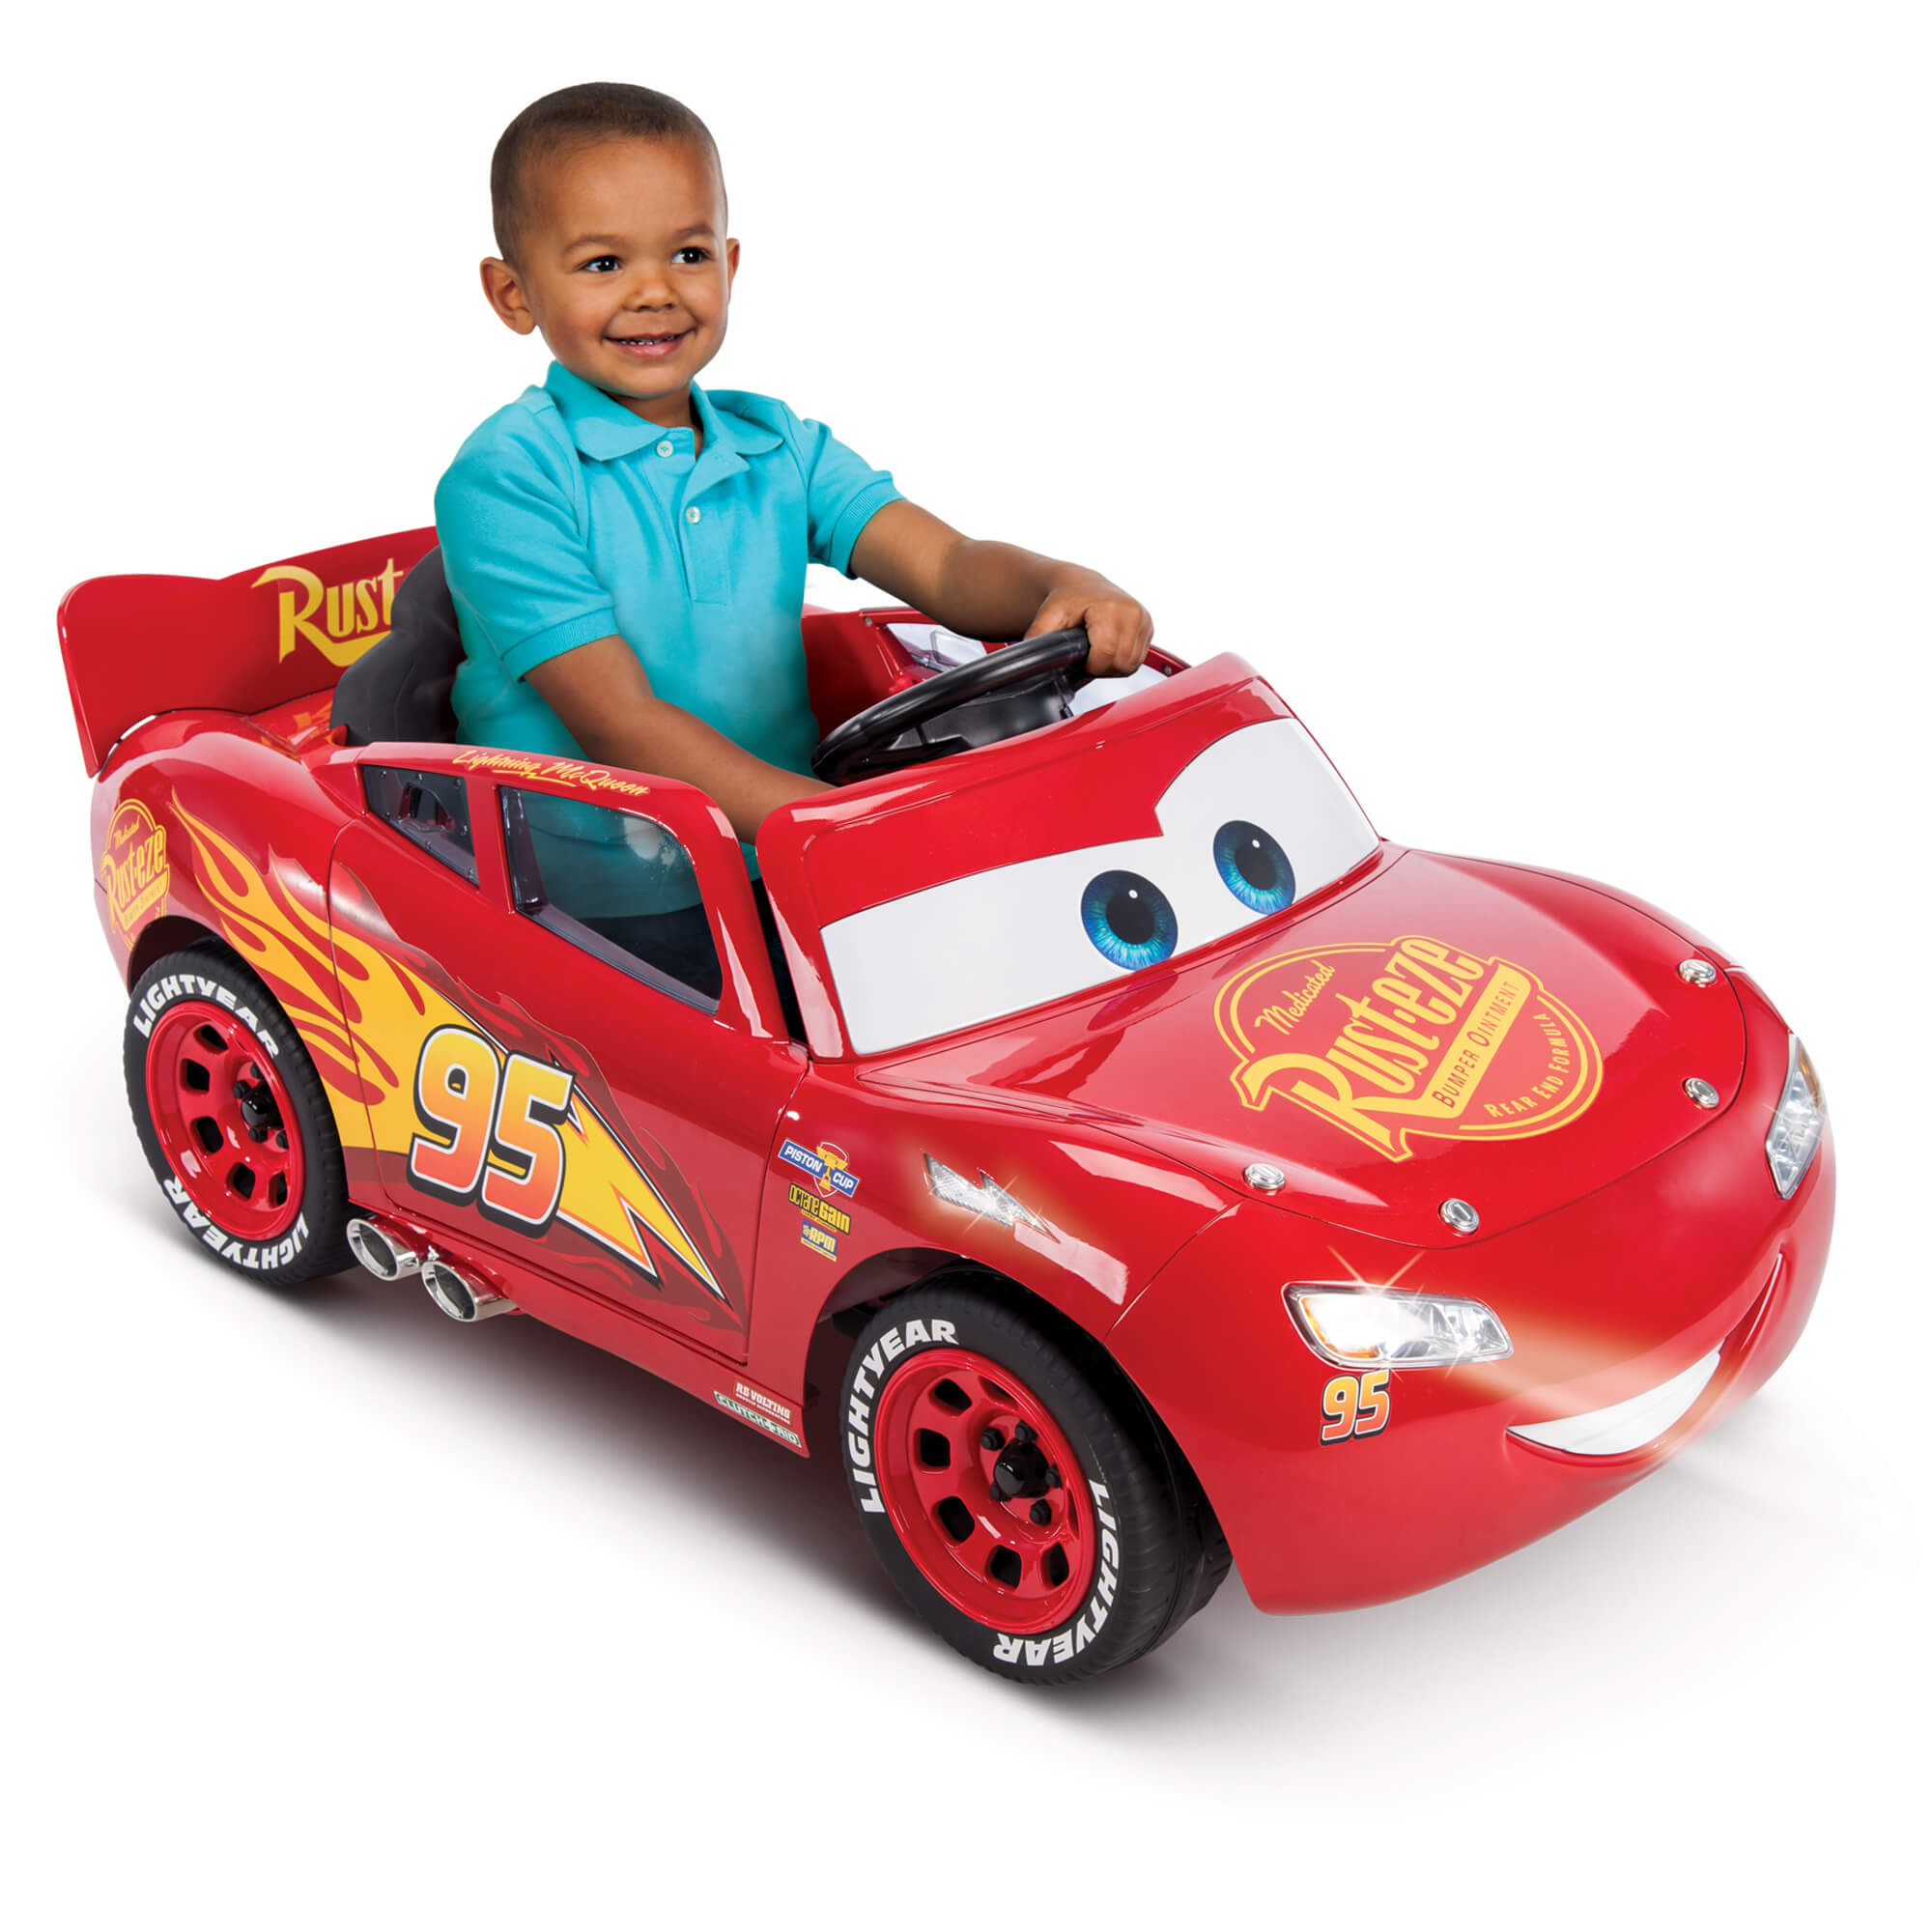 Disney Pixar Cars 3 Lightning McQueen 6V Battery-Powered Ride On by Huffy - Walmart.com  sc 1 st  Walmart & Disney Pixar Cars 3 Lightning McQueen 6V Battery-Powered Ride On by ...